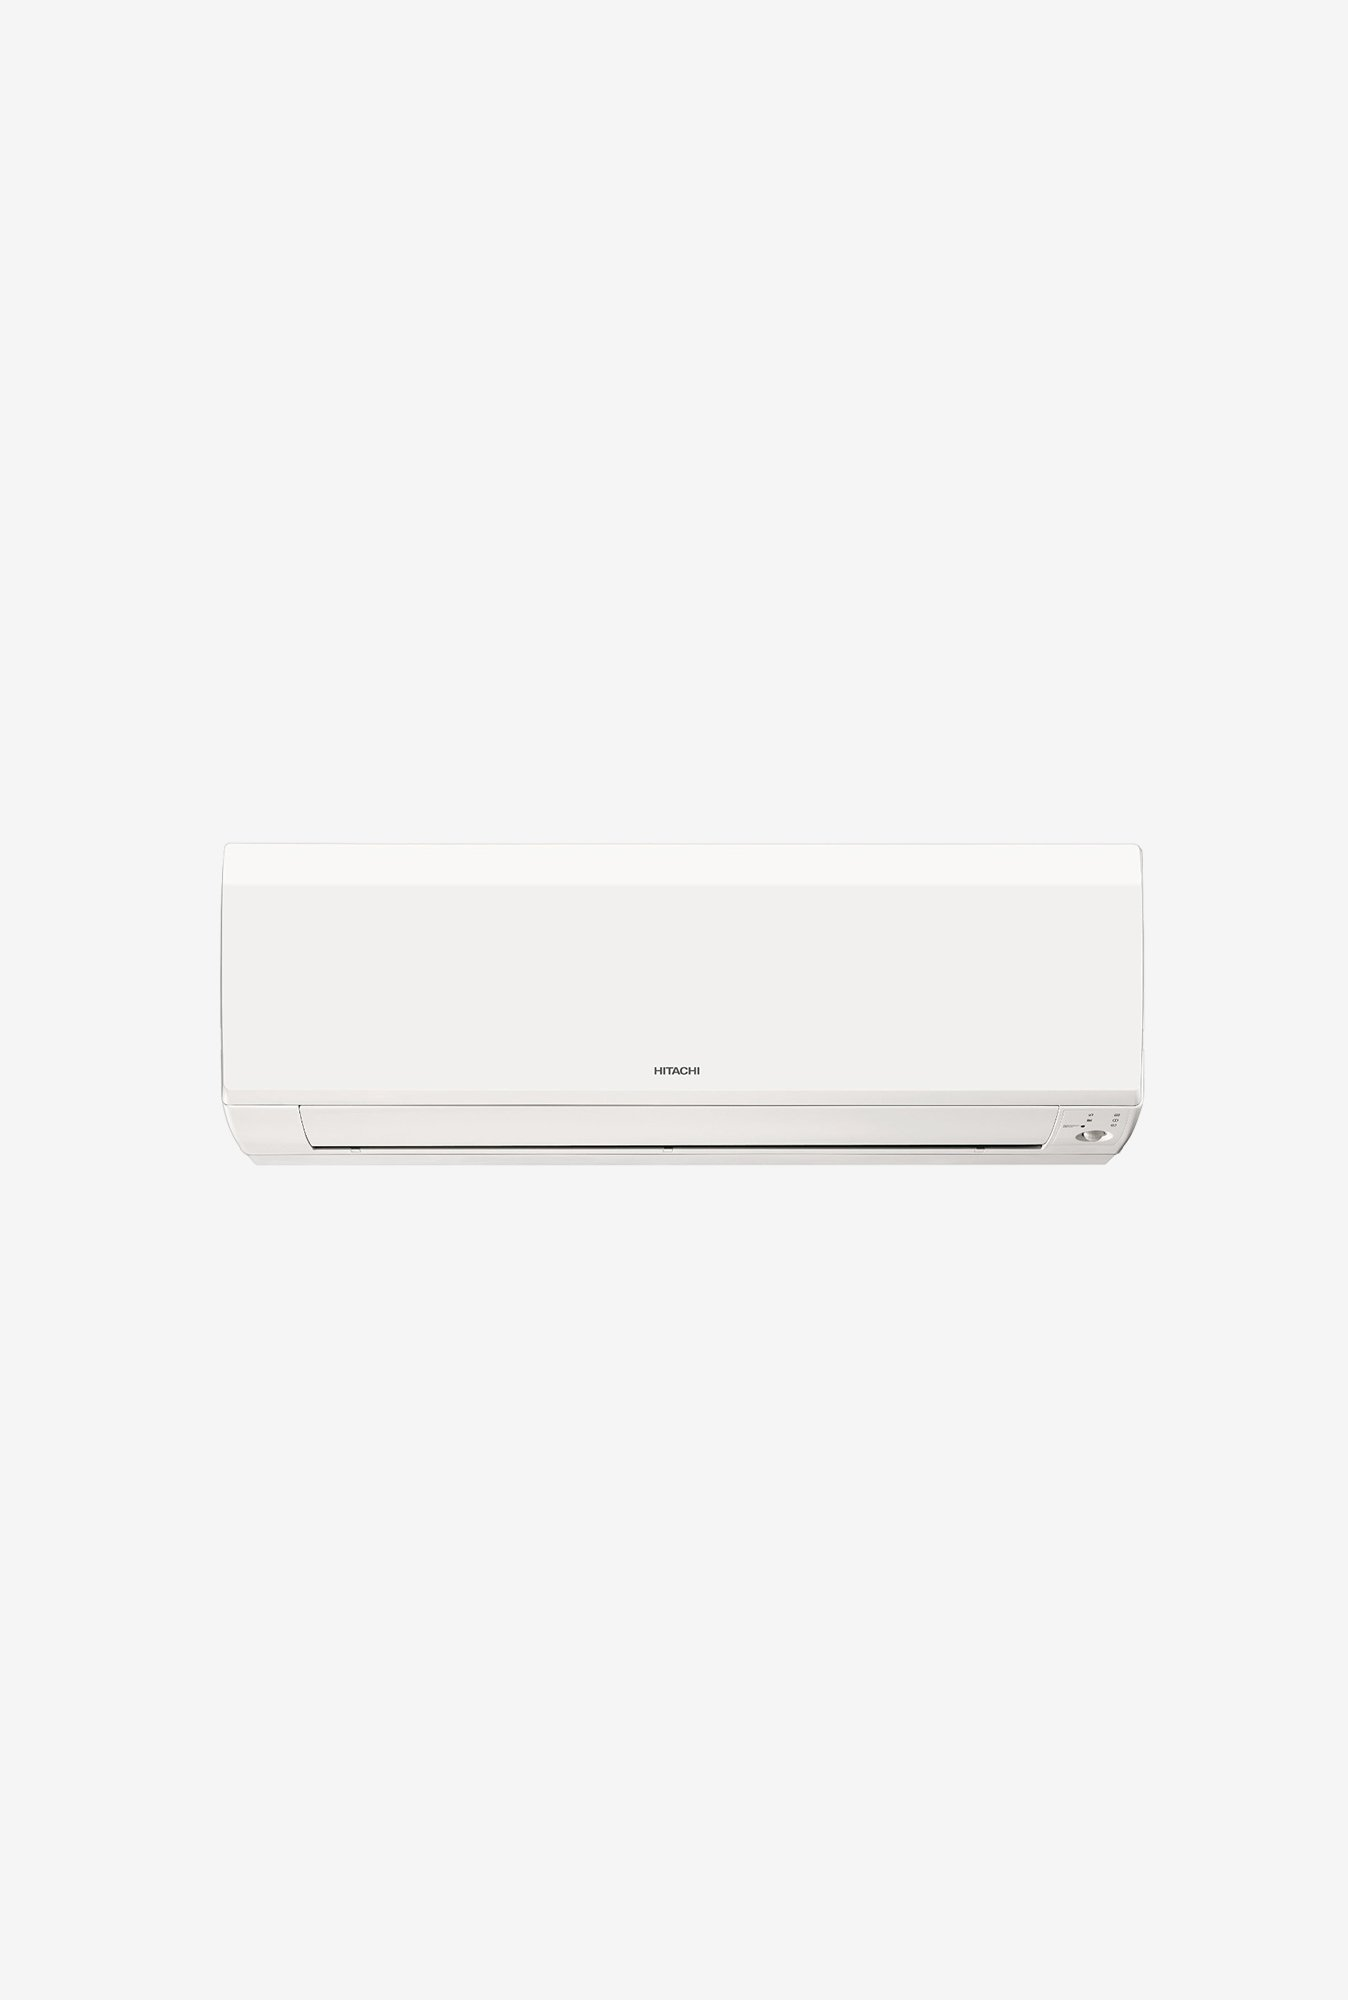 Hitachi RAU518MWD 1.5 Ton I-connect Split AC White